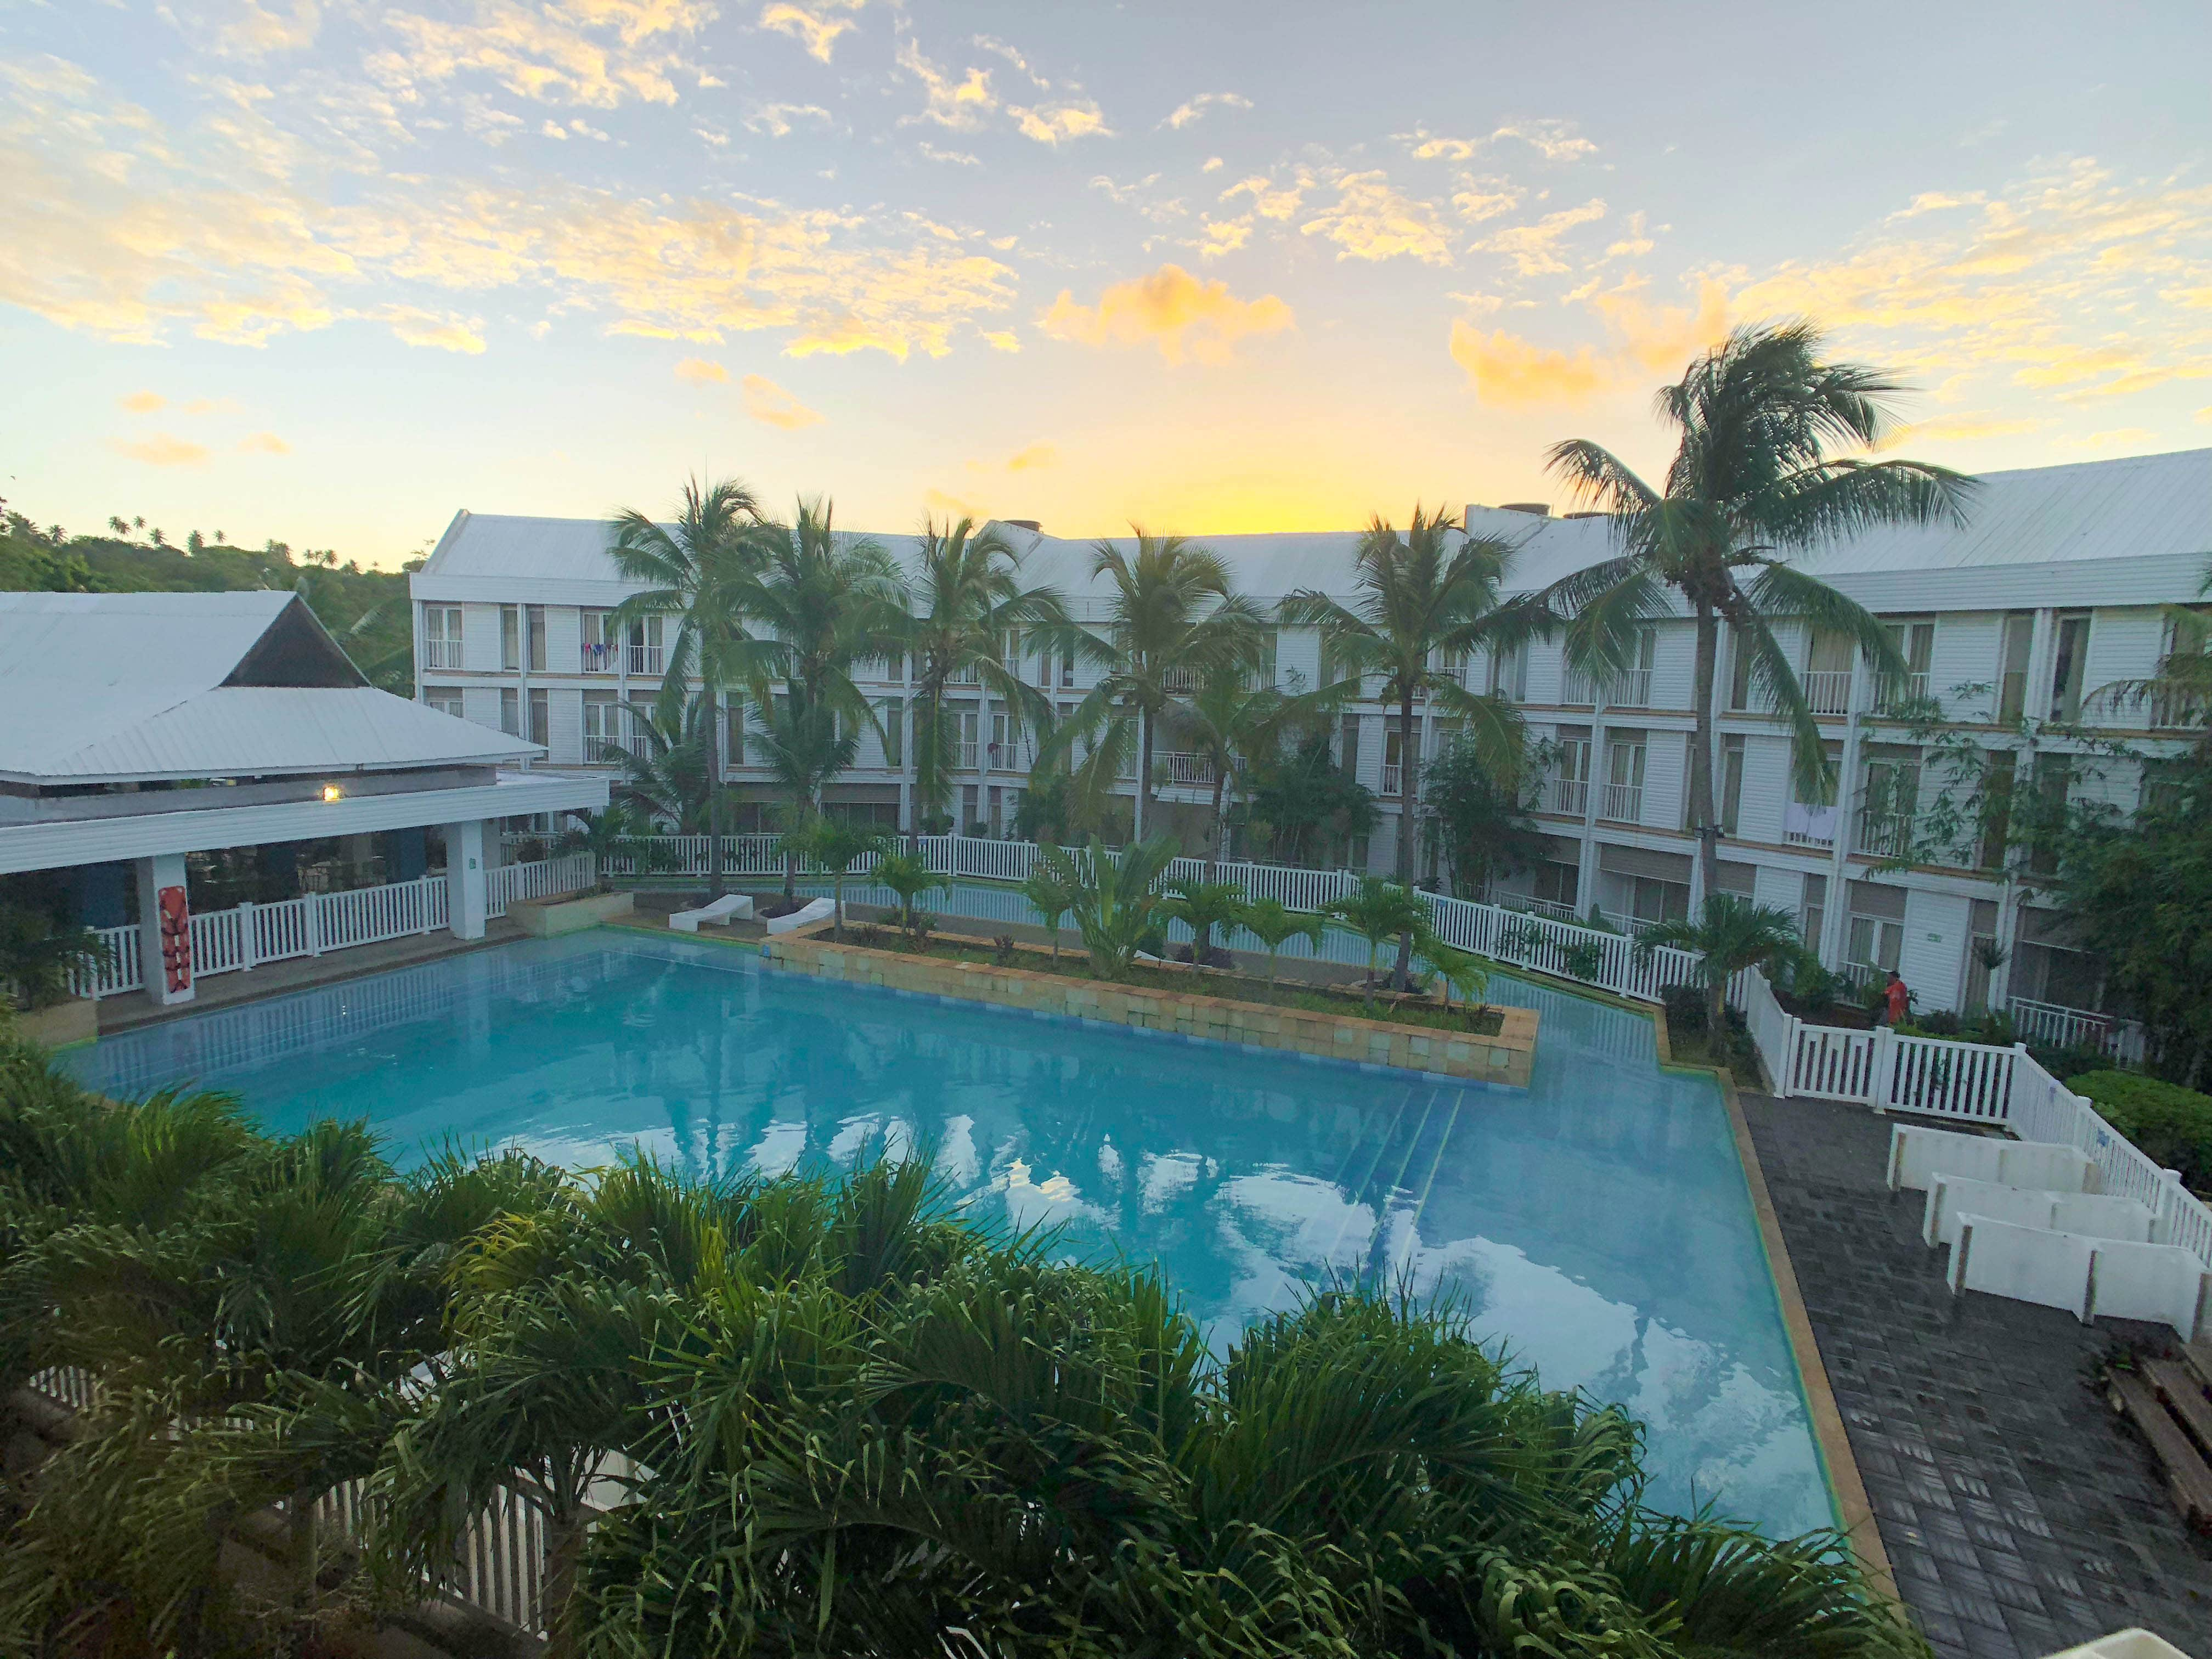 Living in Grace Bay, Turks and Caicos Islands • Turks and